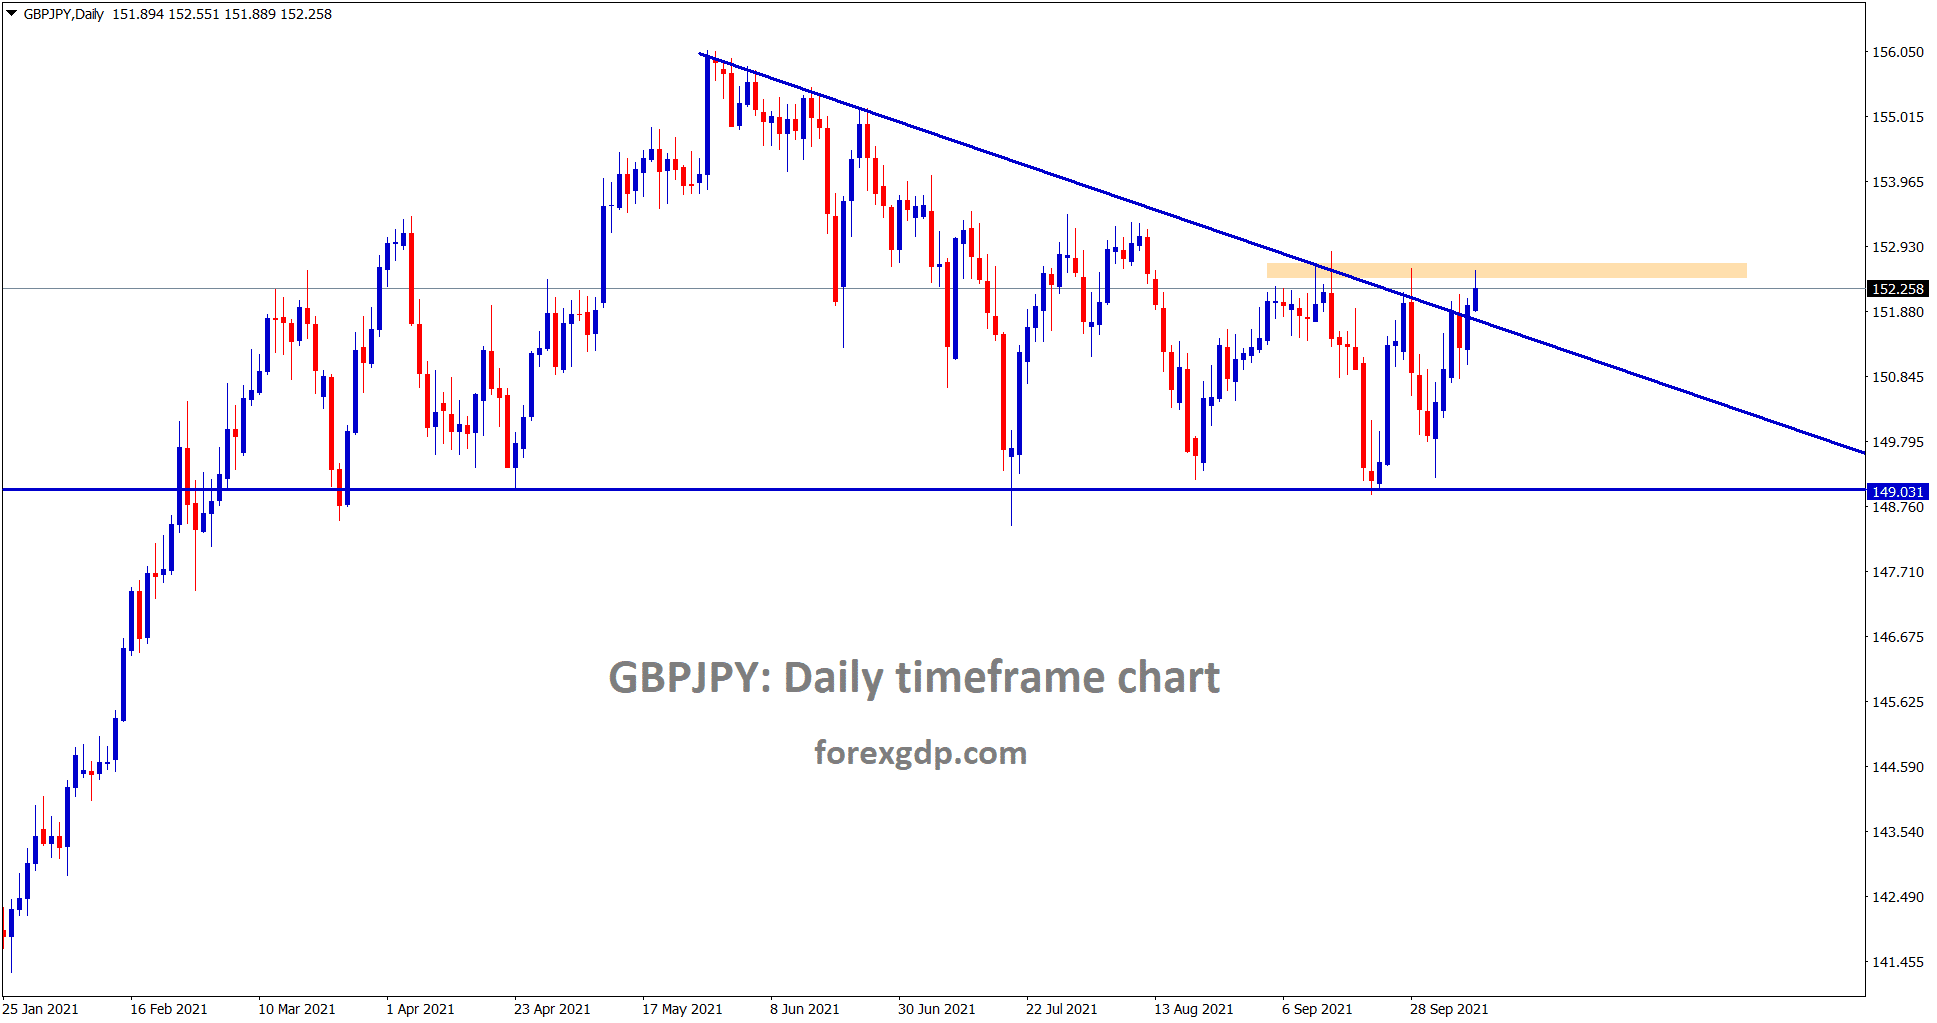 GBPJPY is breaking the top of the descending channel